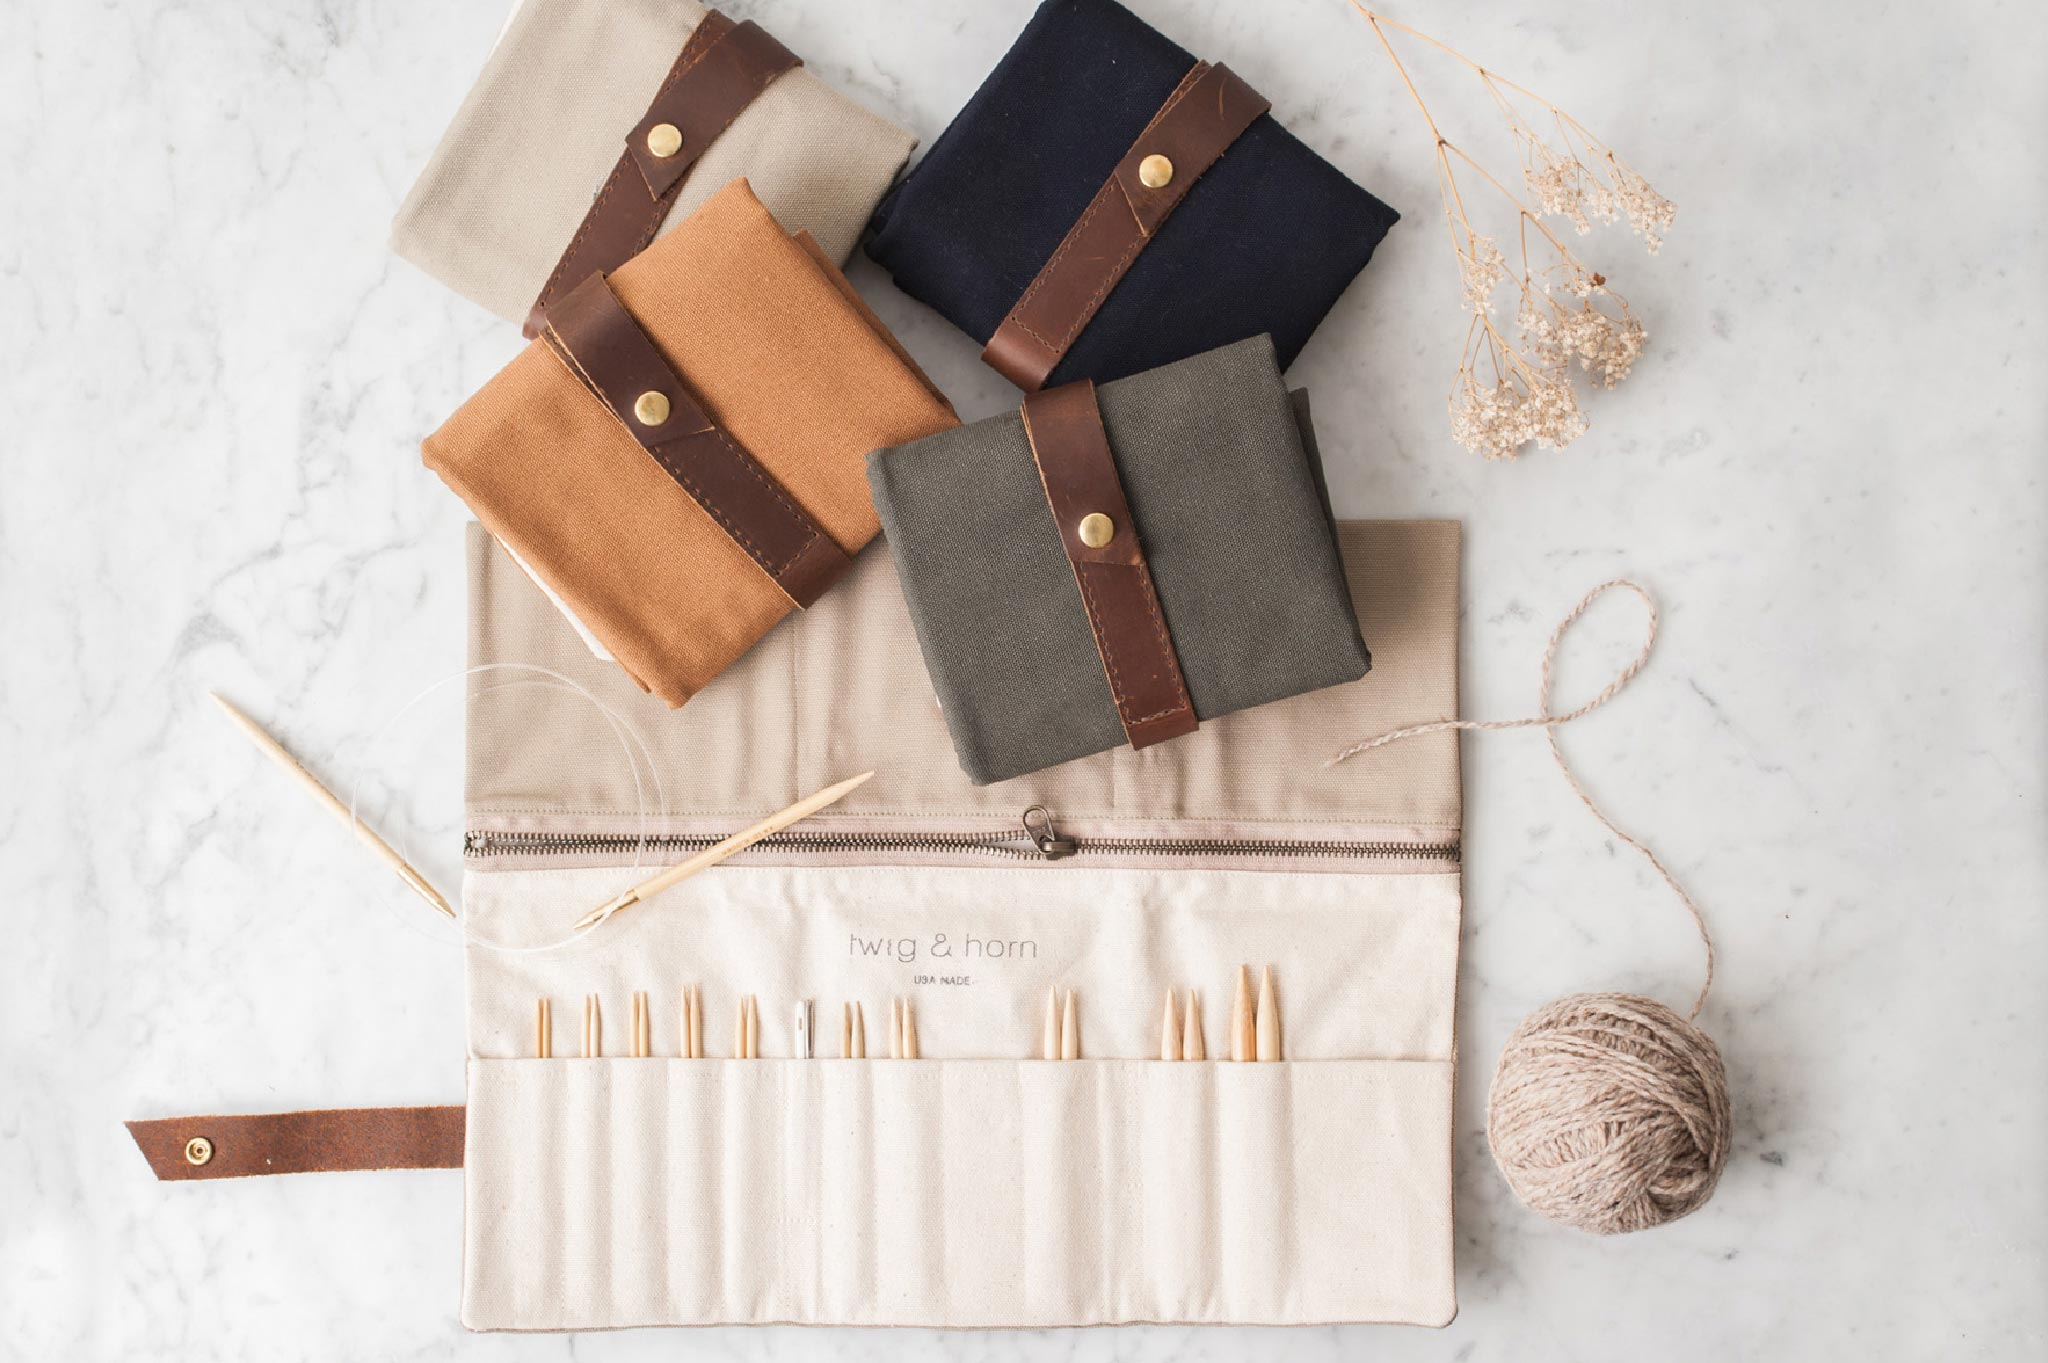 https://quinceandco.com/products/ka-interchangeable-knitting-needle-set